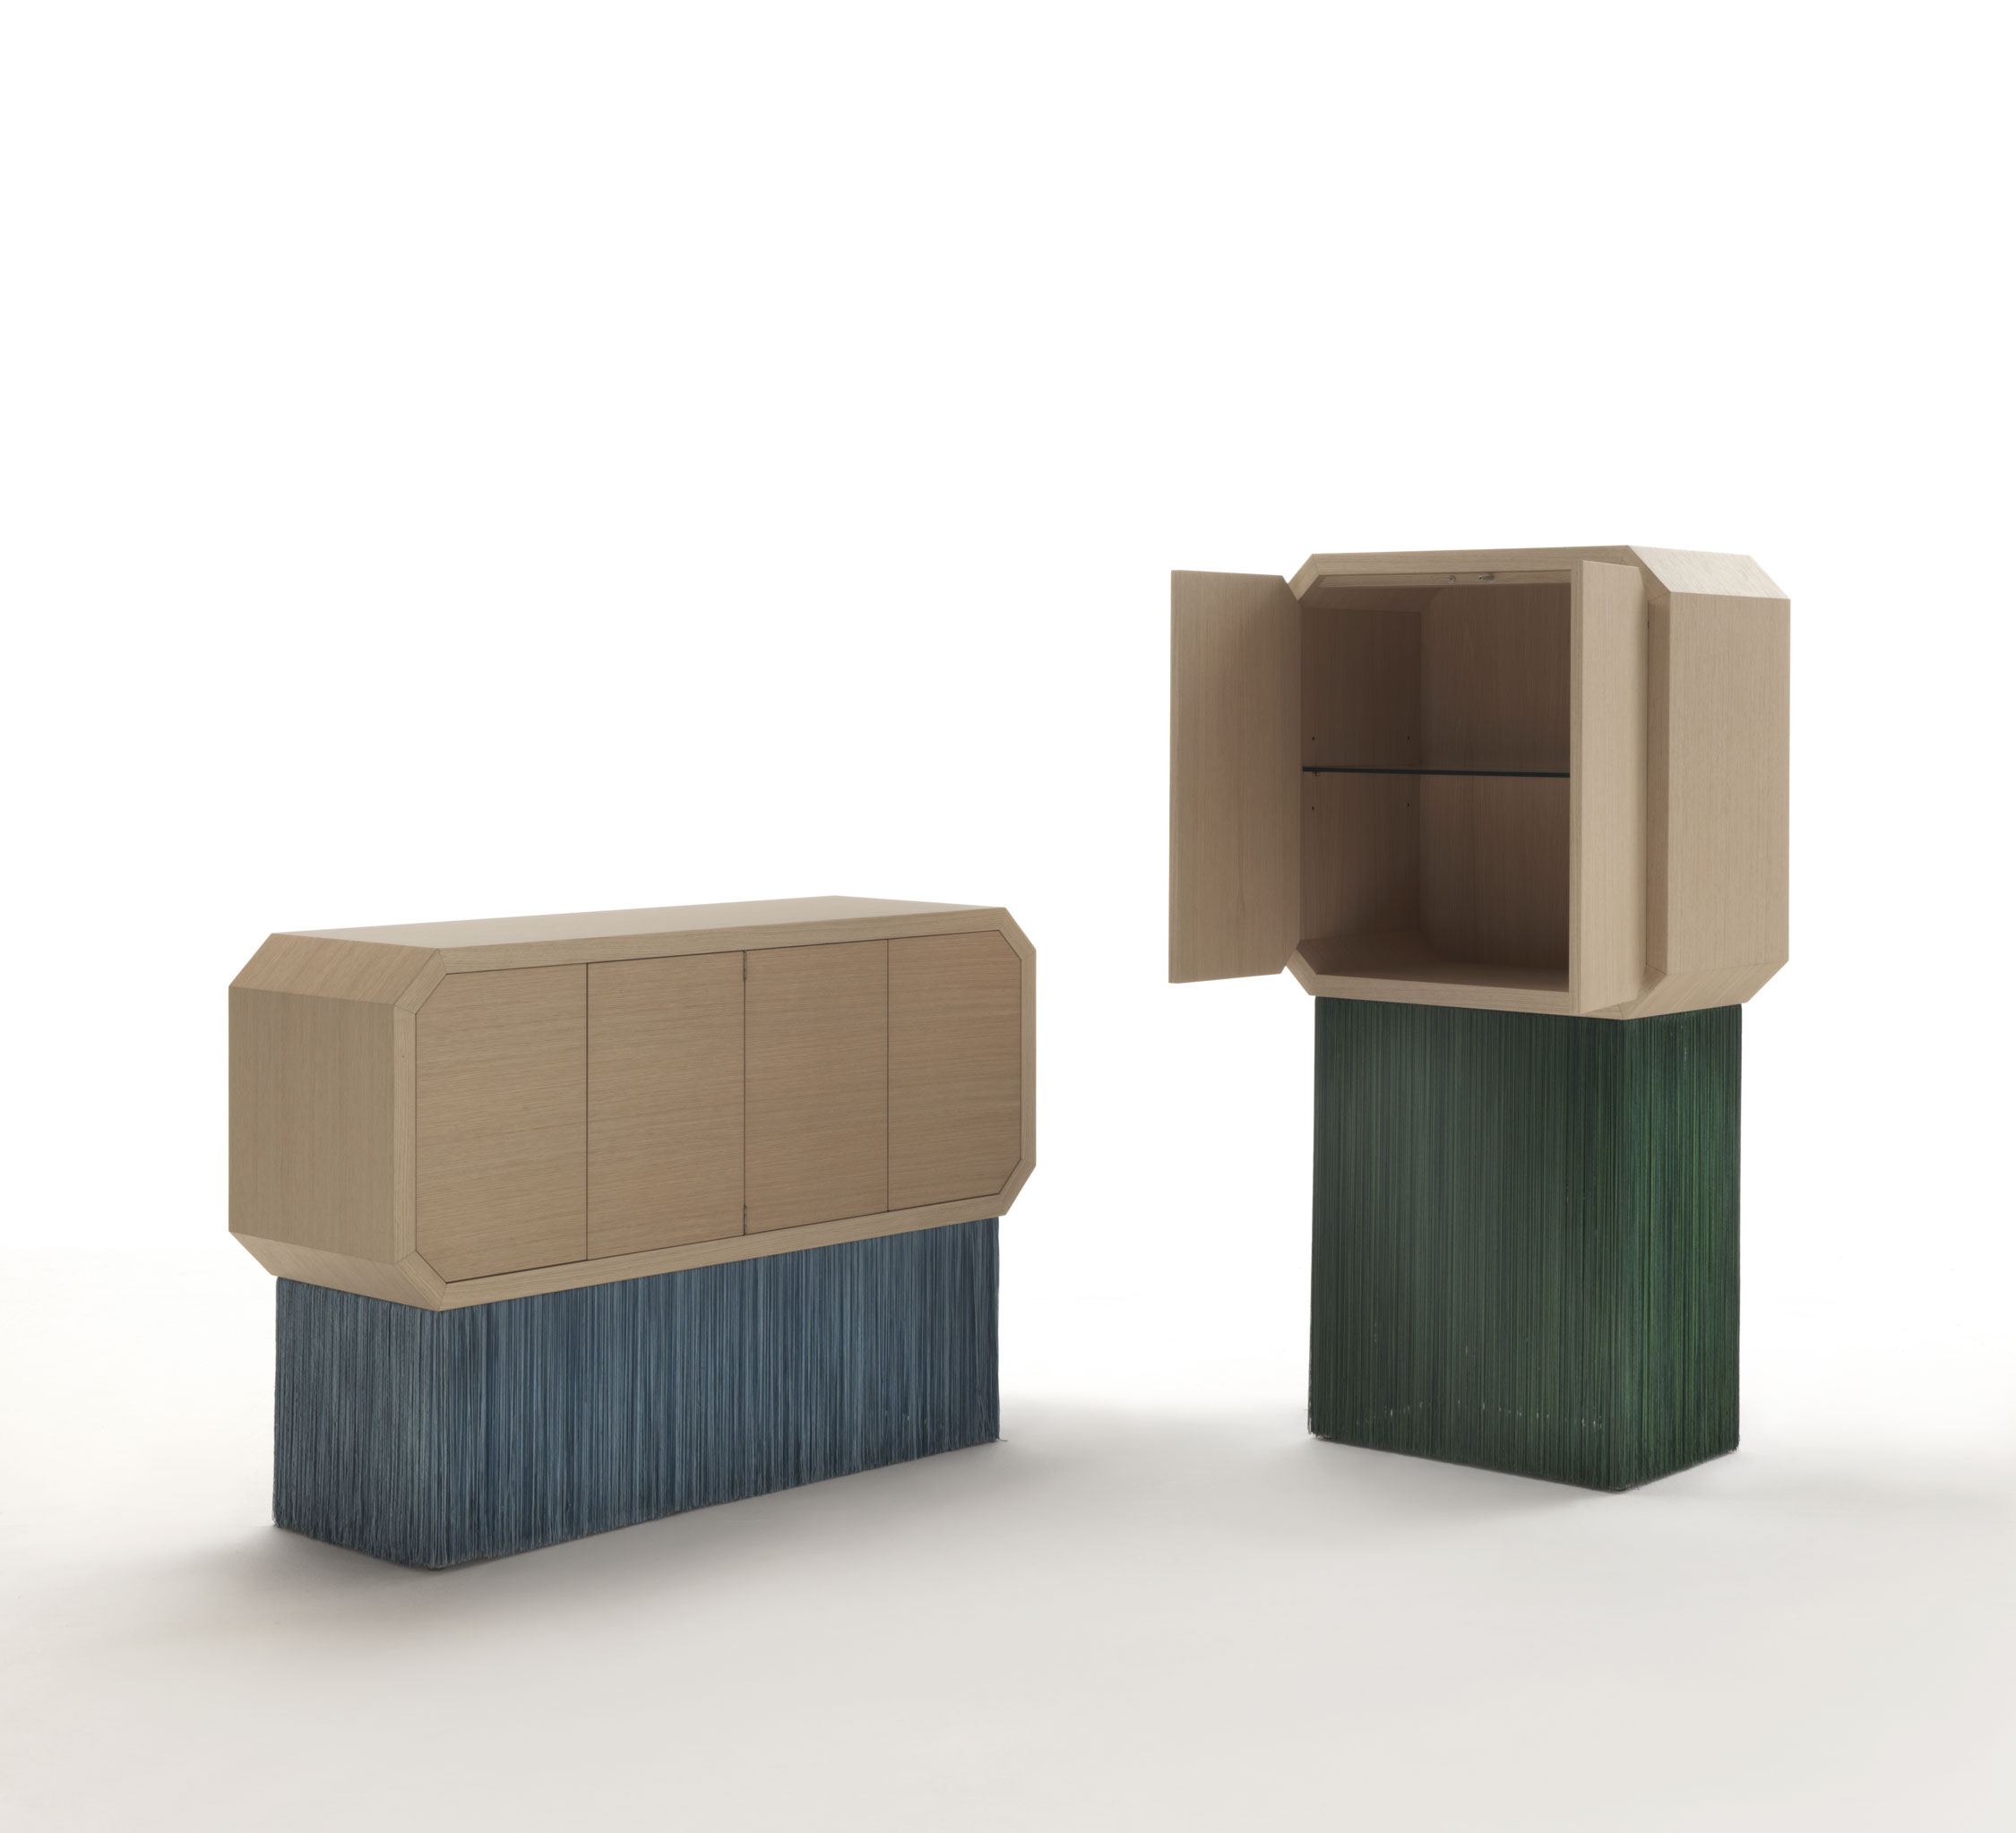 """Sipario High Cabinet - The inspiration for the Sipario collection arises from a study about Italian theatres: a wooden semi cycle, perspectival off-stages and a deep scenery. Top cabinet is available in Oak or Walnut wood. The fringes are made using a technique called """"Tripolino"""".  Other colour available for bespoke orders.  